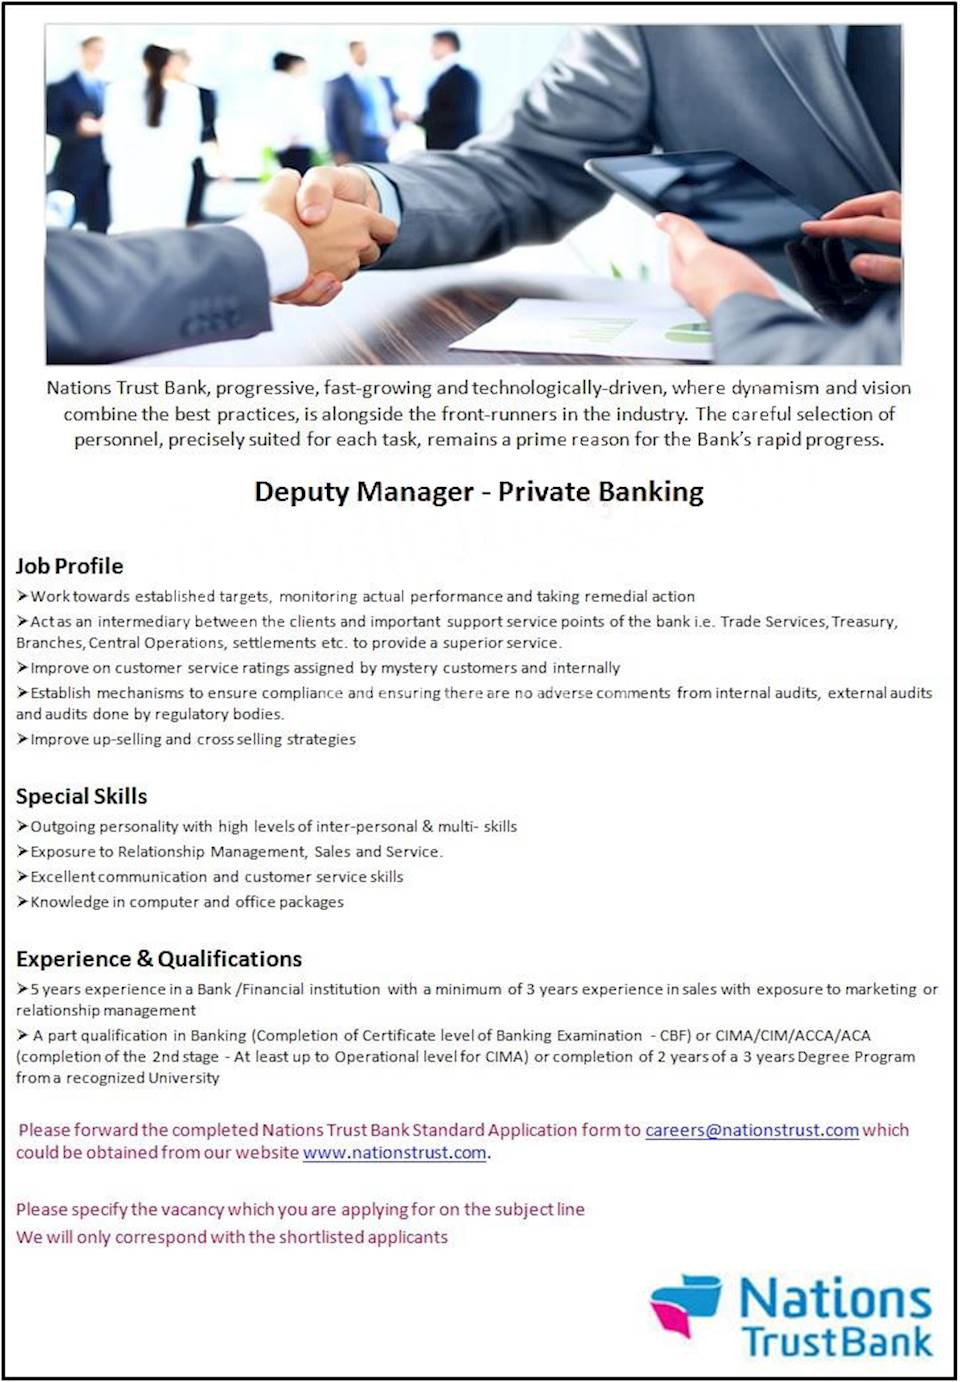 Deputy Manager - Private Banking